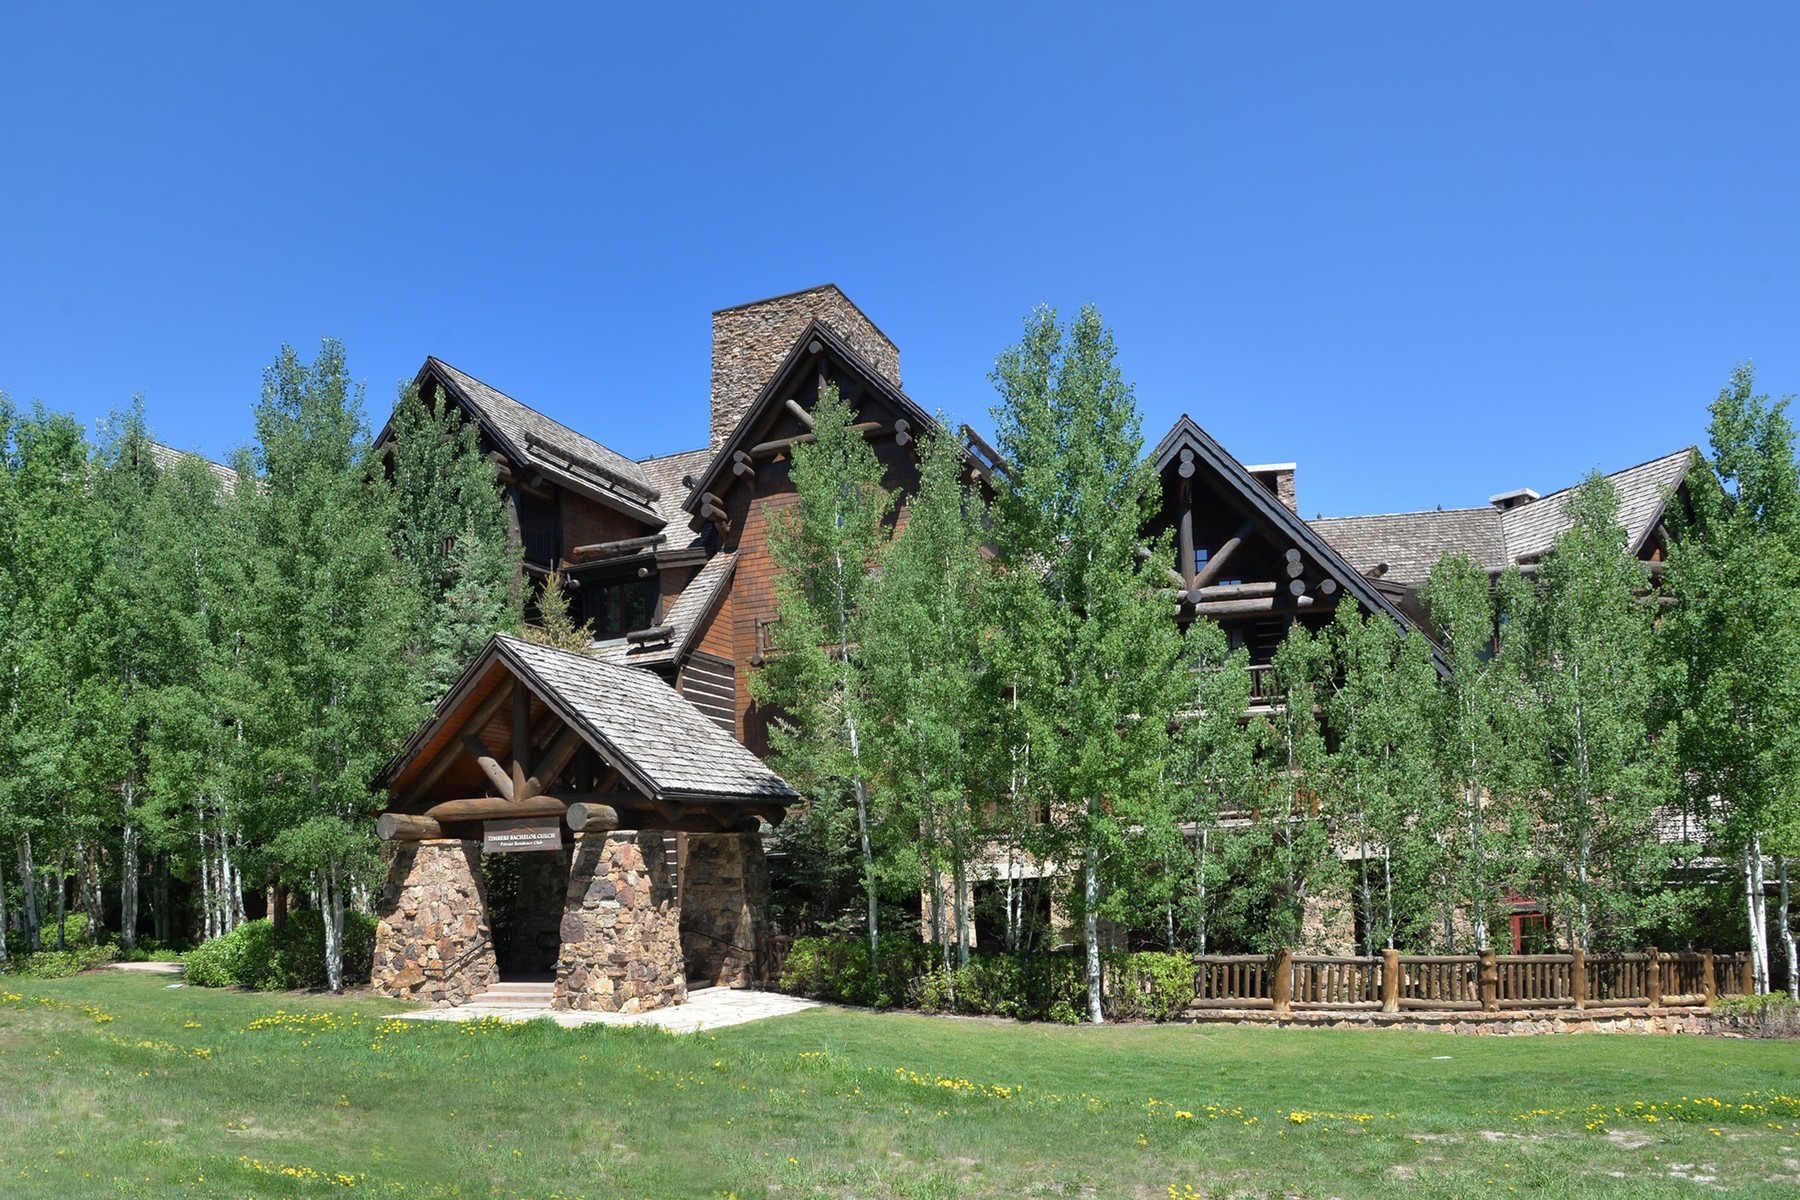 Fractional Ownership Properties for Sale at The Timbers, Bachelor Gulch 3308-09 100 Bachelor Ridge Road #3308-09 Bachelor Gulch, Colorado 81620 United States